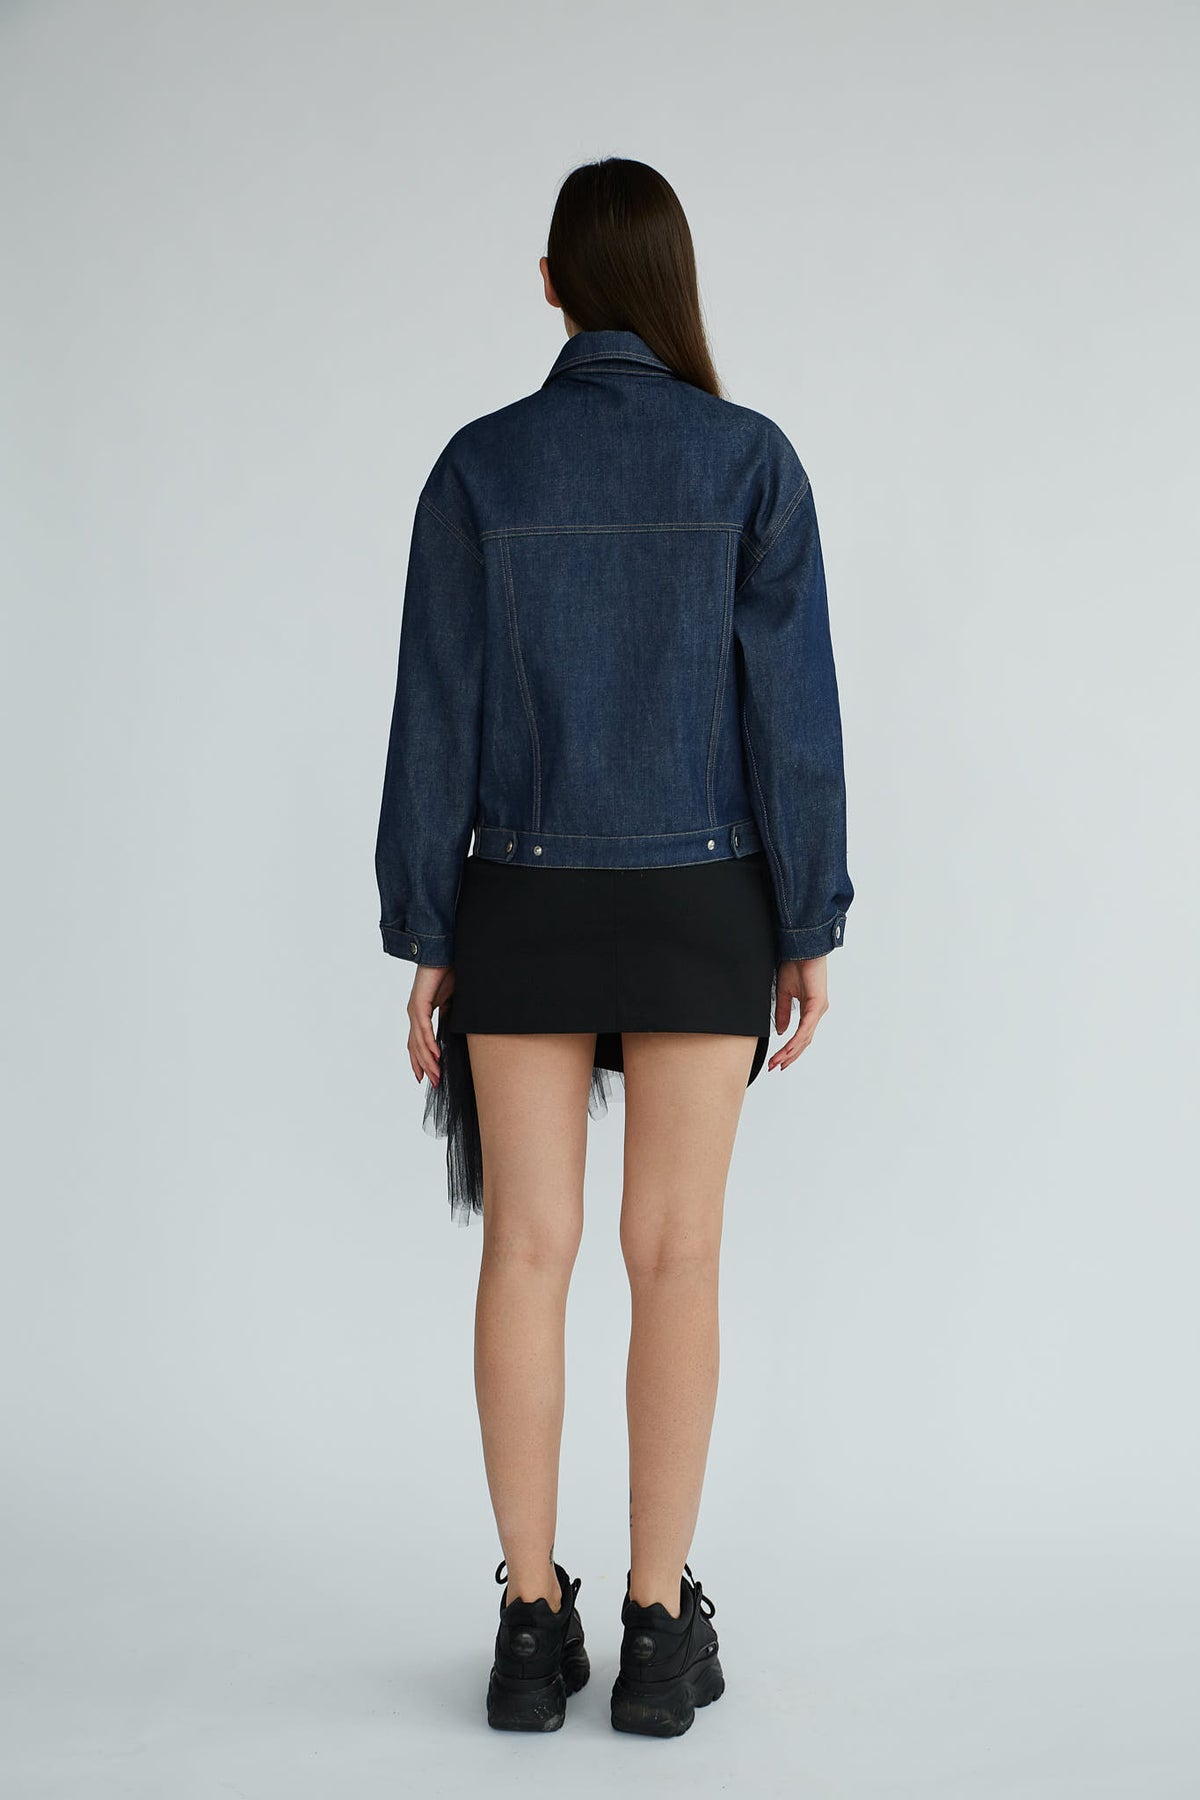 Genes | Blue Denim Jacket With Attachable Yellow Fox Fur Collar - Le Slap - Dark Snap Buttons Denim Fox Hot Designers